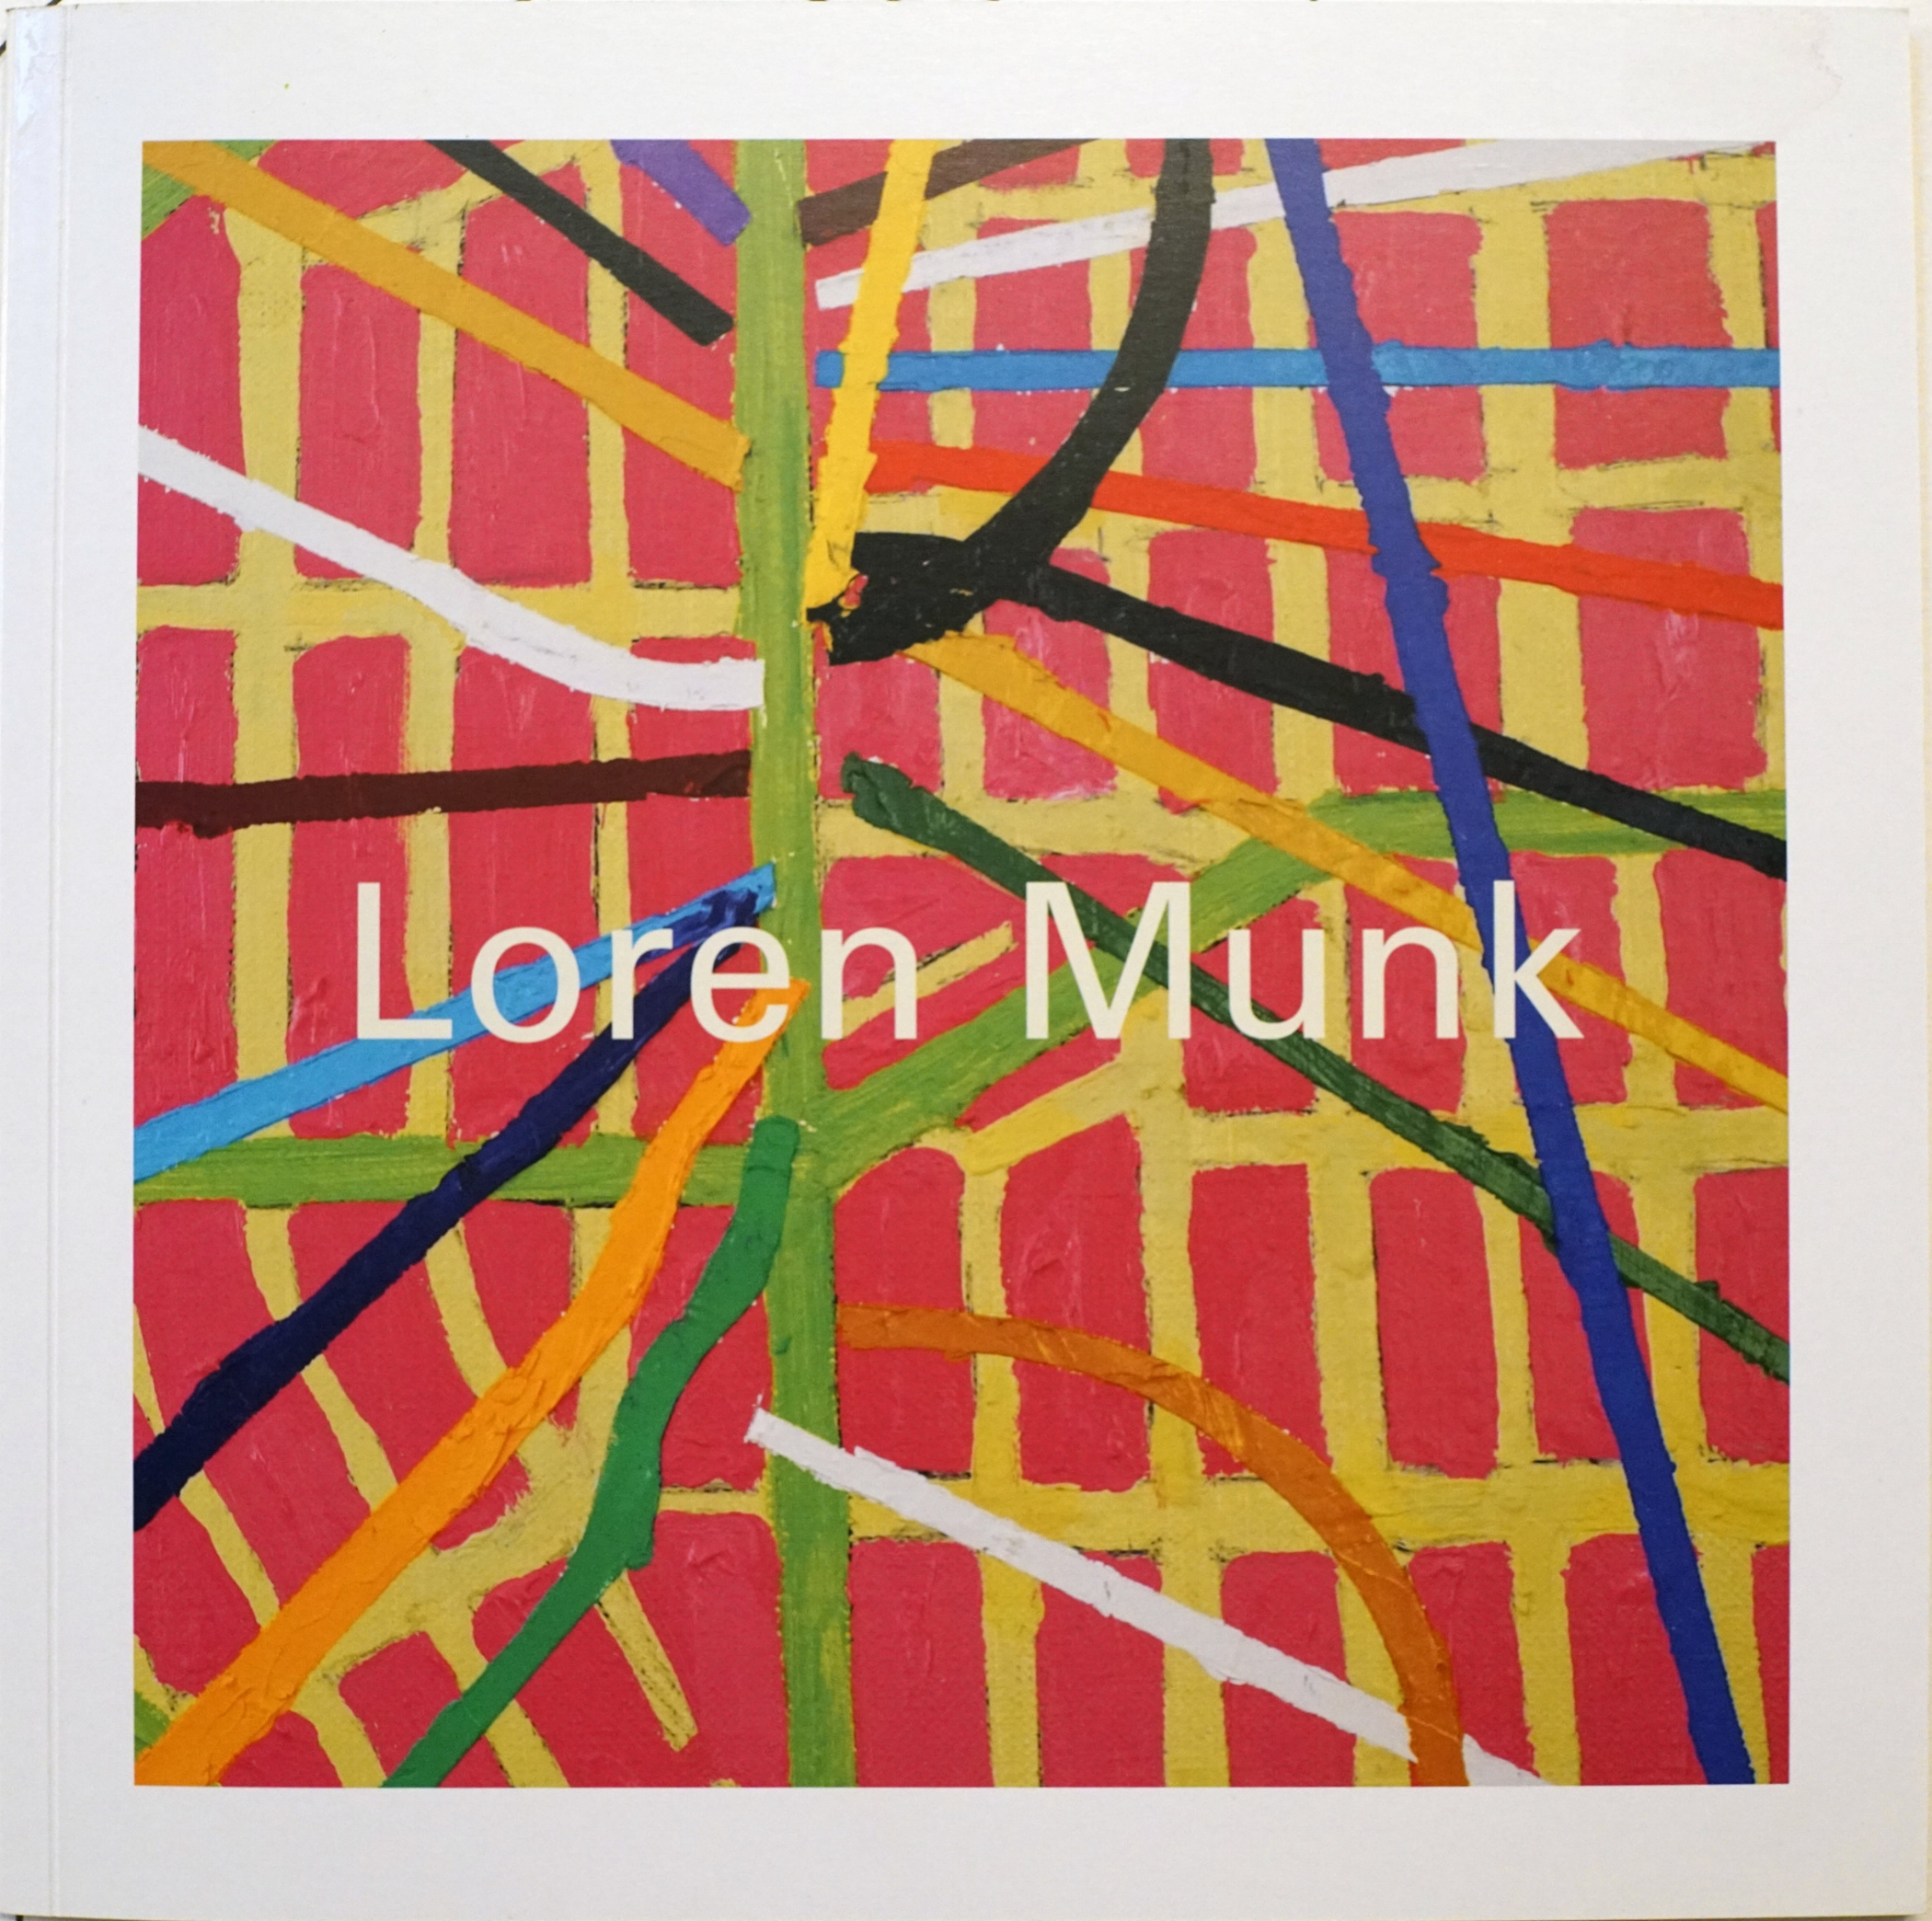 LOREN MUNK Reconnoitring: Cartography of an Art Enthusiast - by Raphael Rubinstein, catalog essay